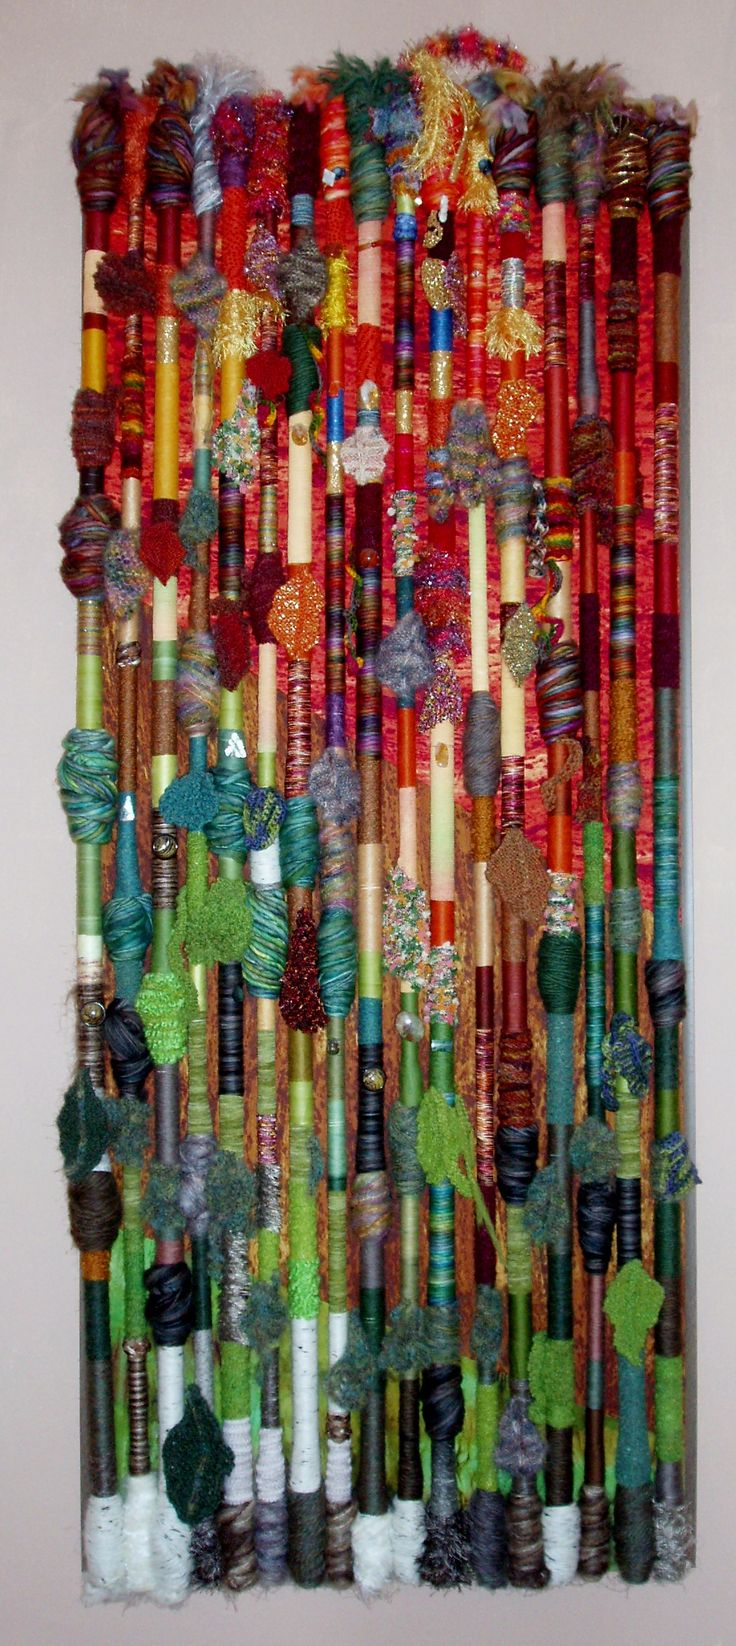 Fiber Art Wall Hanging - Fall in the Northland. Made by Polly Tracey with an assortment of wool yarn, fabric, buttons and free form crochet.